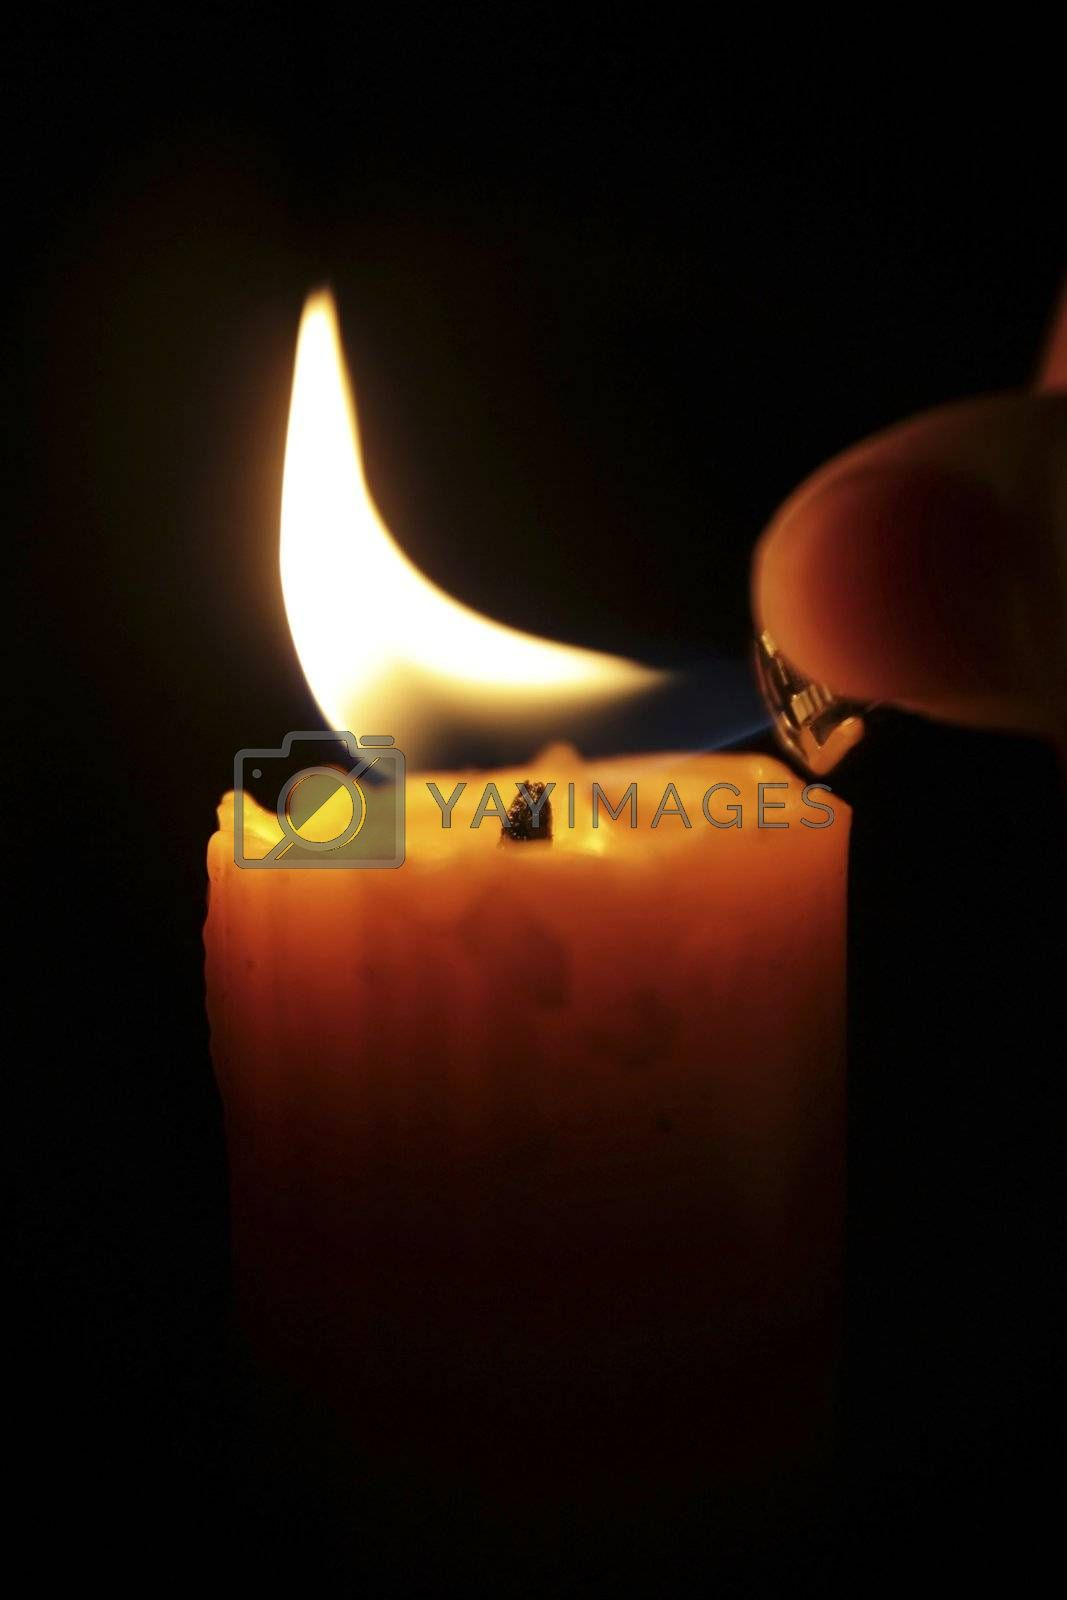 hand lighting candle in the dark